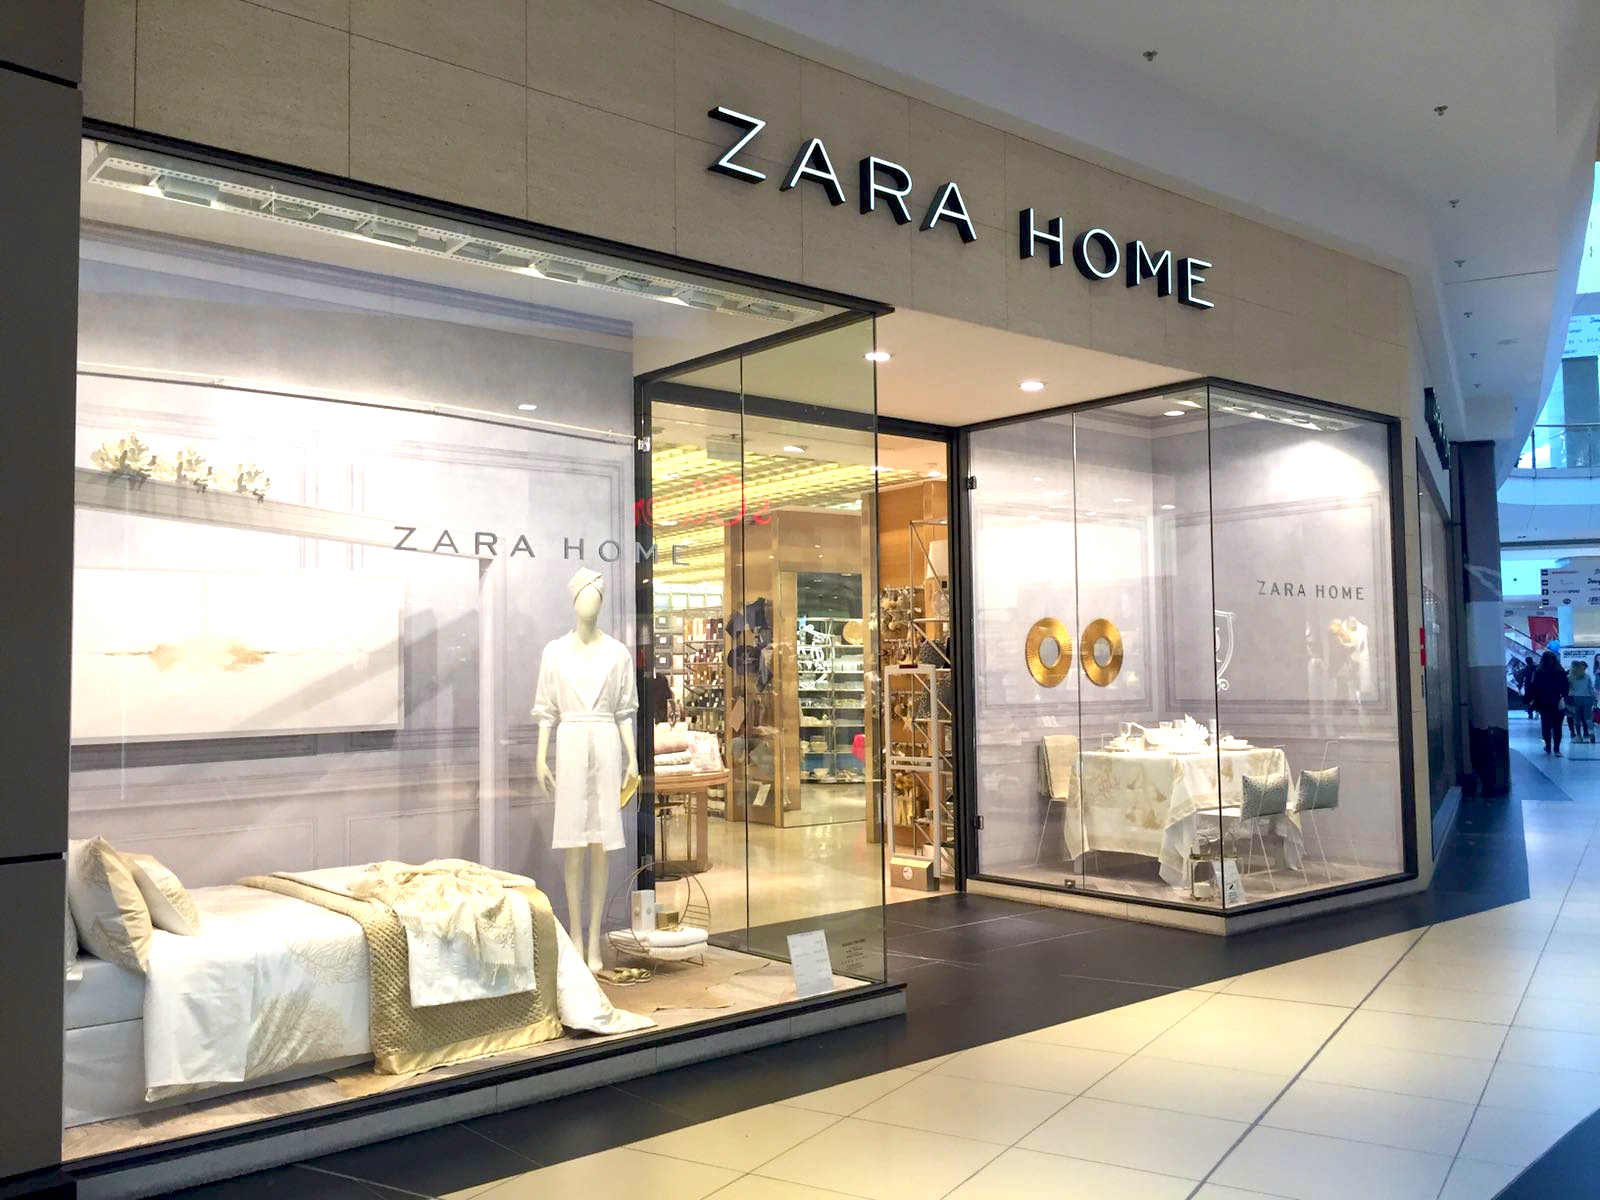 5 pretty decor finds from my zara home shopping spree for House accessories stores